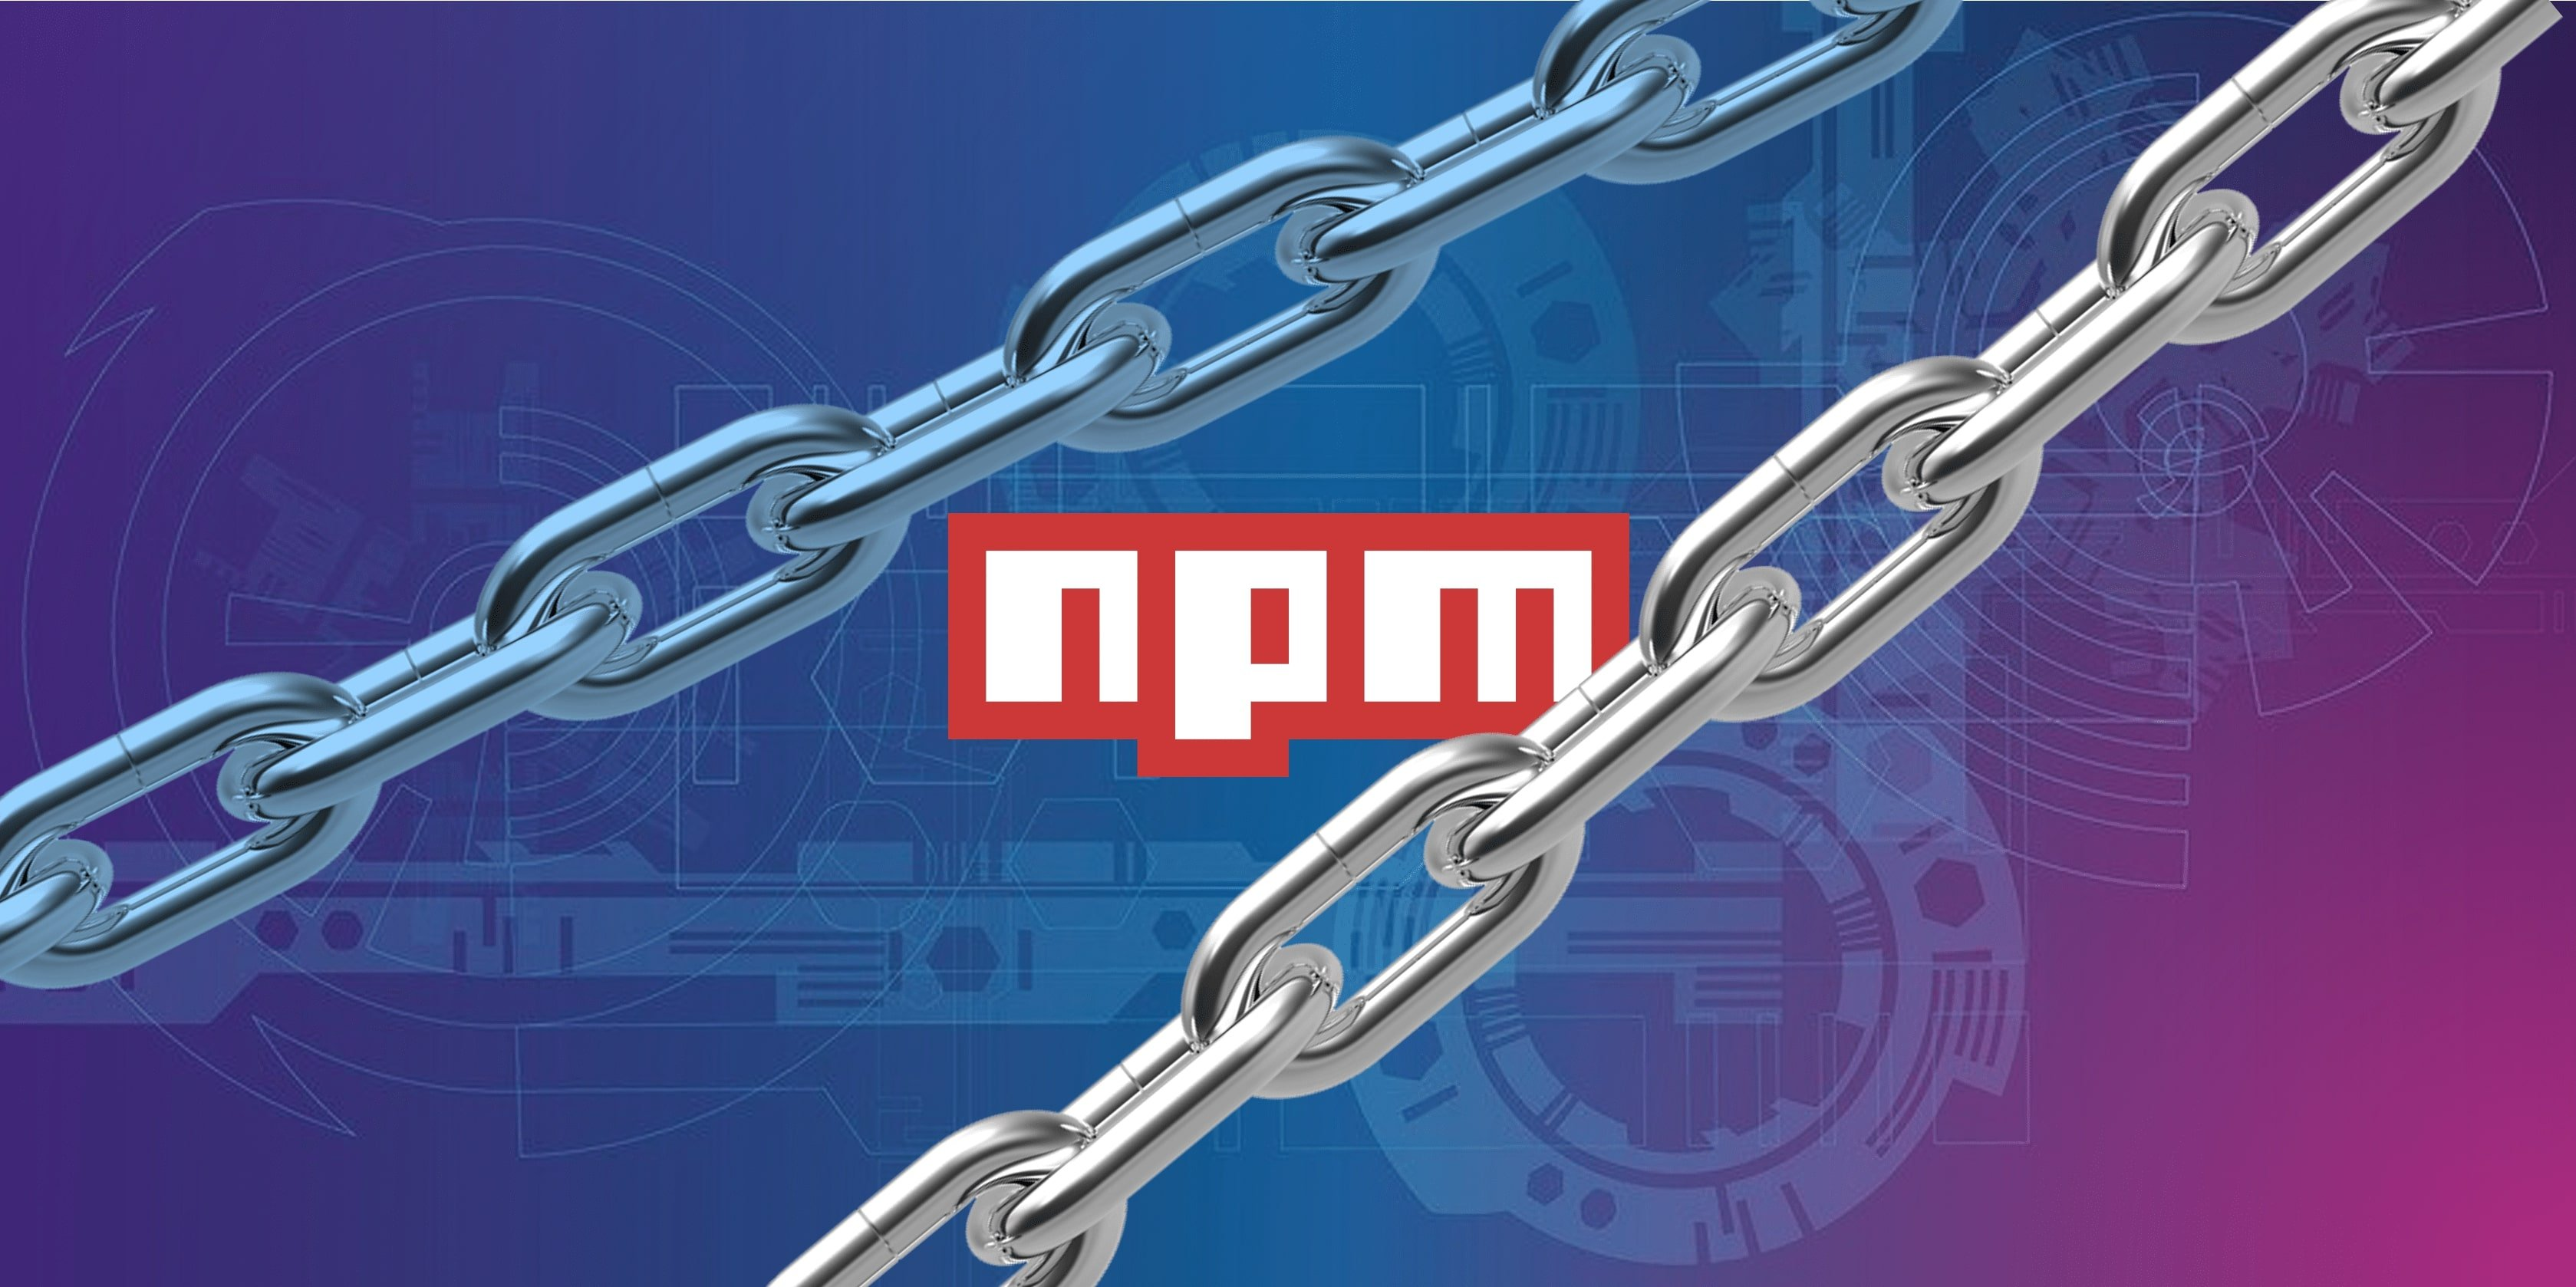 New Linux, macOS malware hidden in fake Browserify NPM package